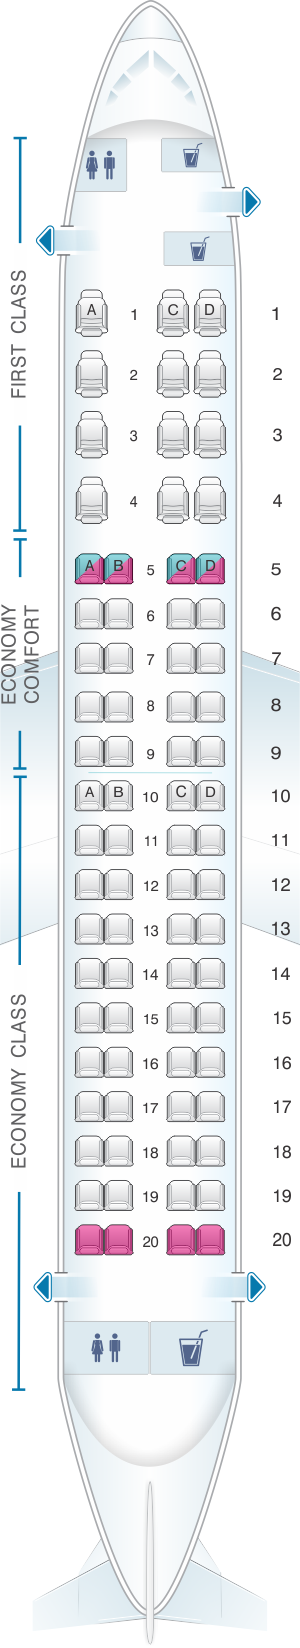 Seat map for Delta Air Lines Embraer E175 Compass